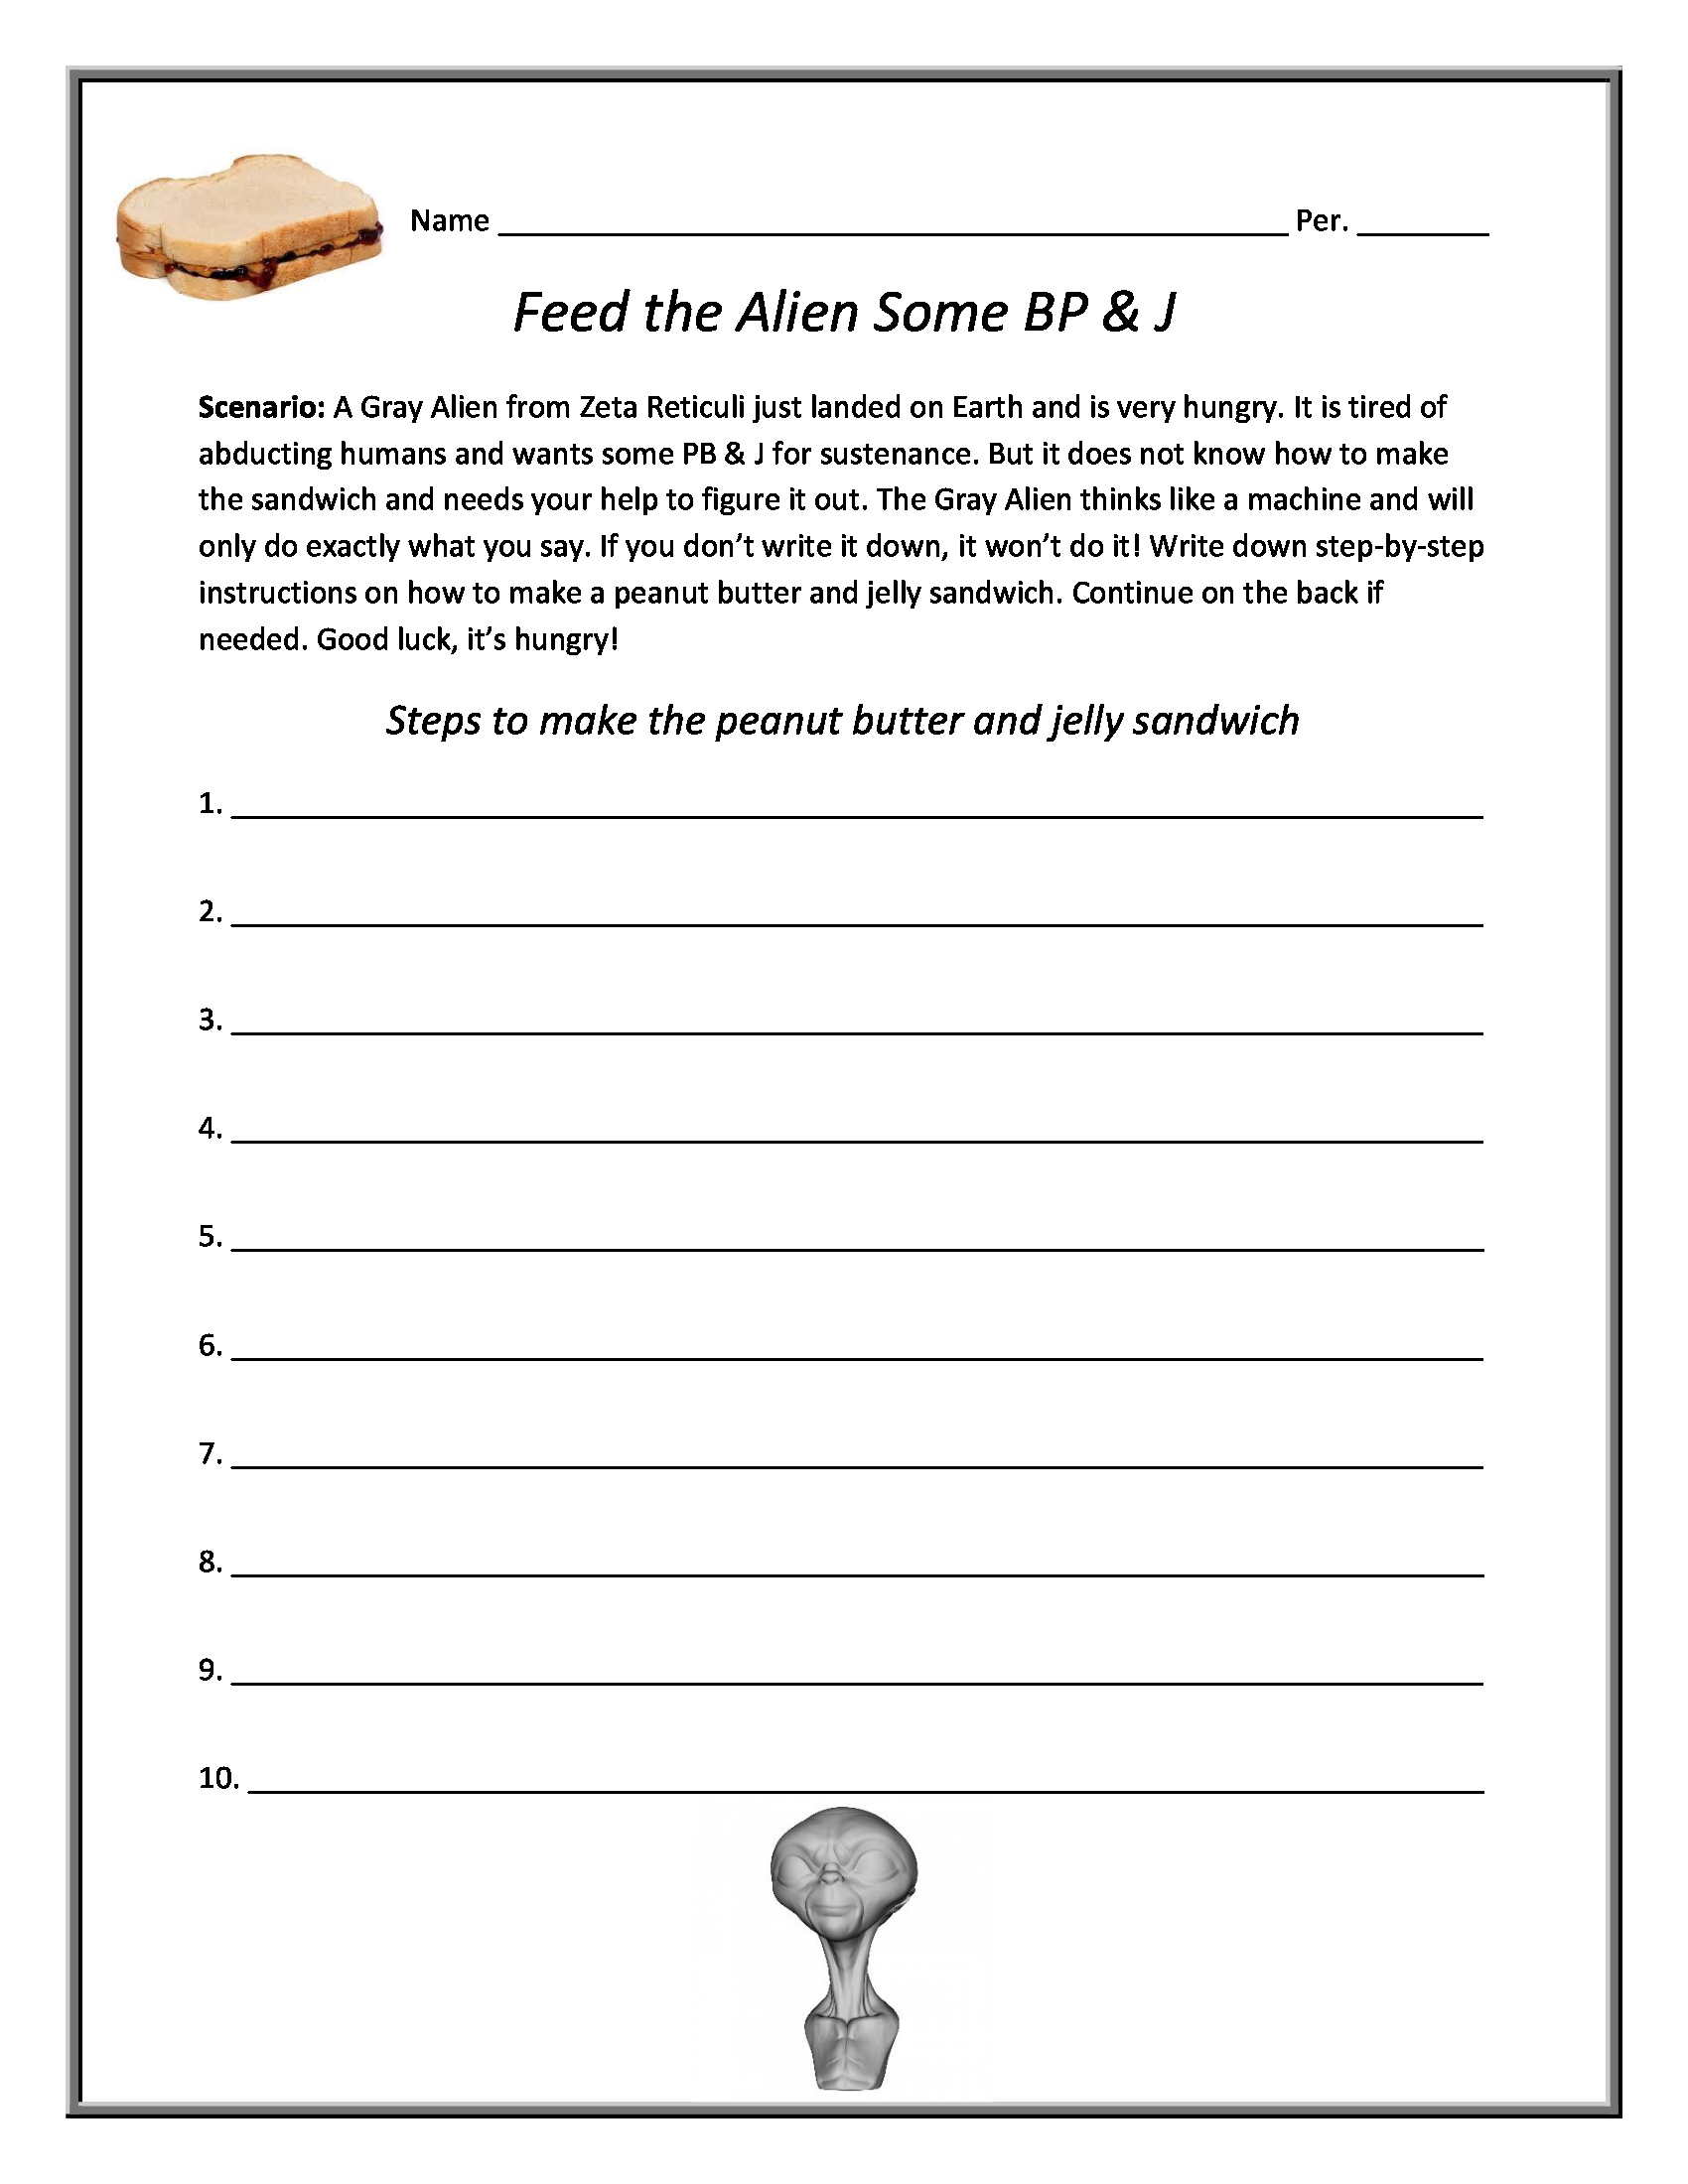 Worksheets Following Directions Worksheets For Middle School peanut butter and jelly lab following directions worksheet conceptual science lessons com